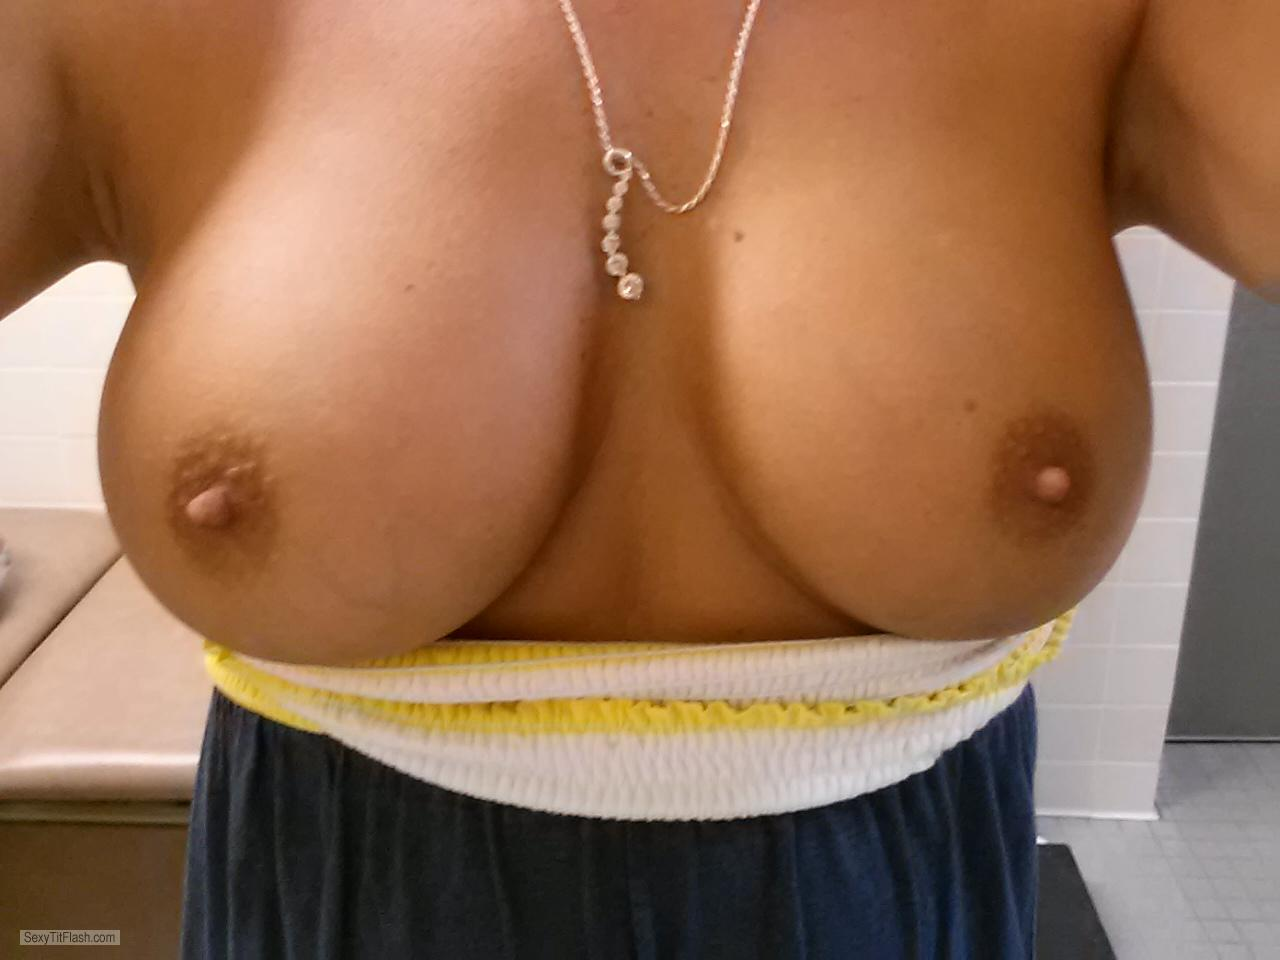 My Big Tits Selfie by WI Girl